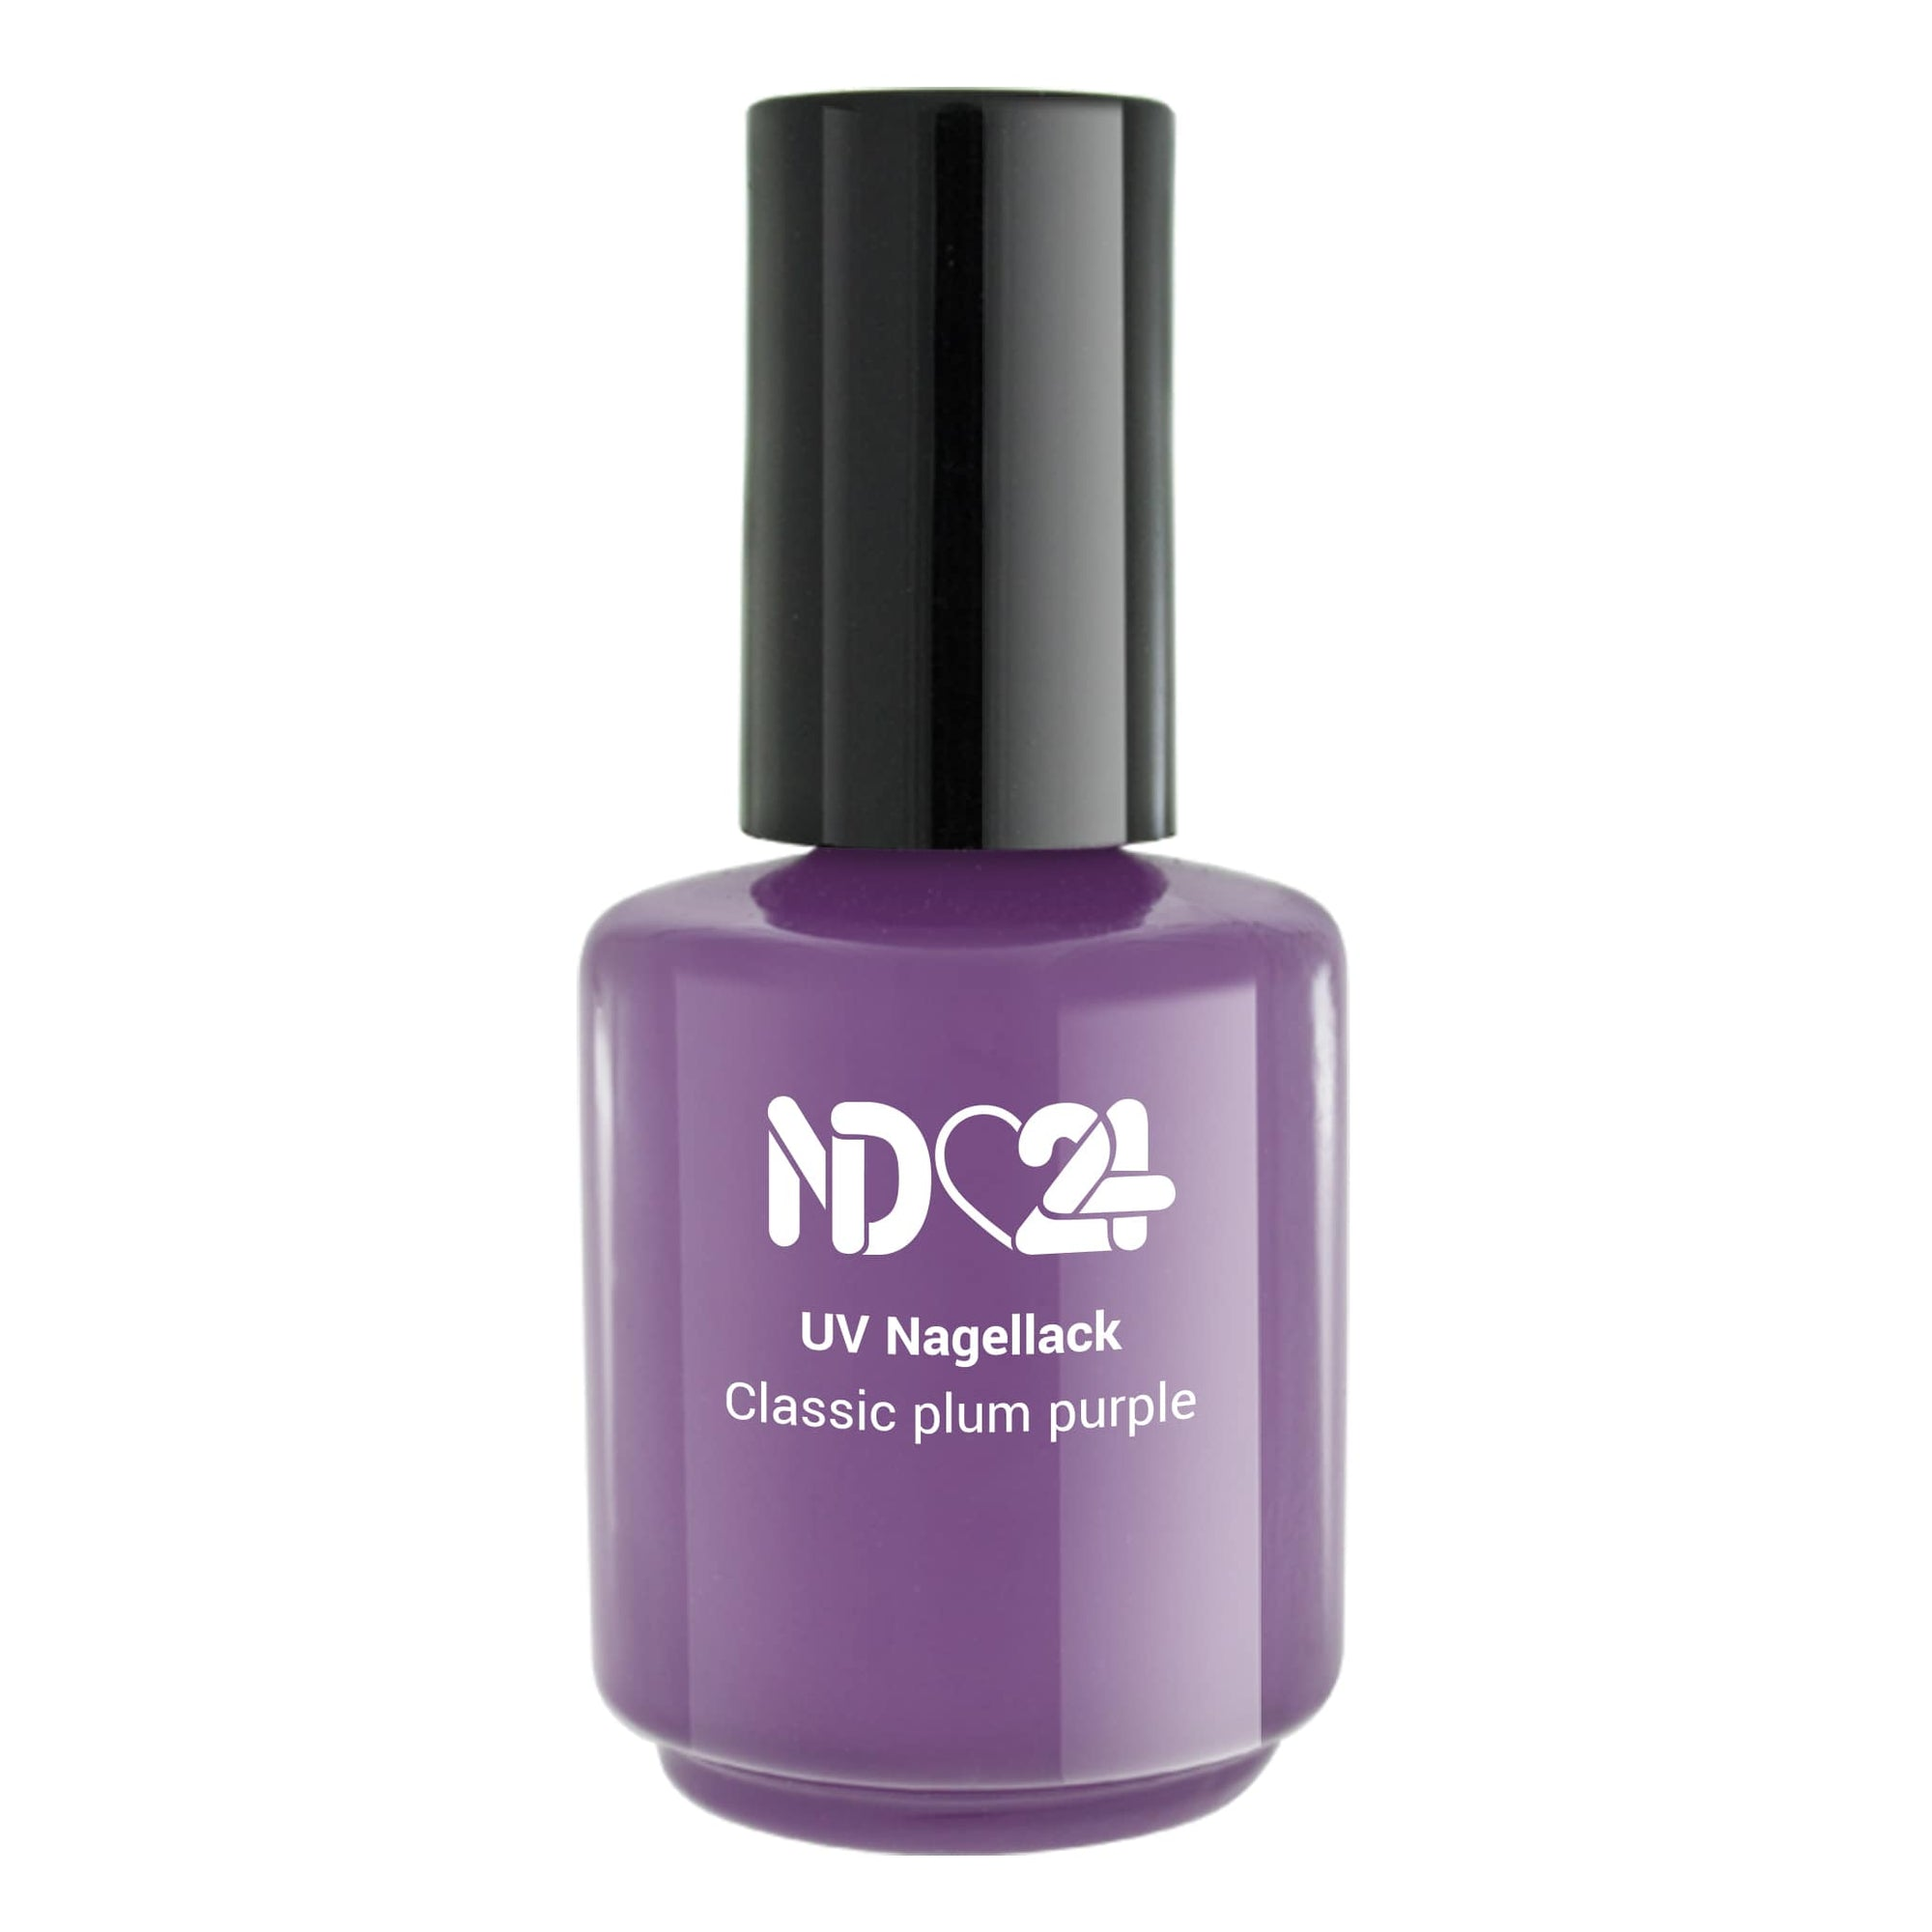 UV Nagellack Classic plum purple